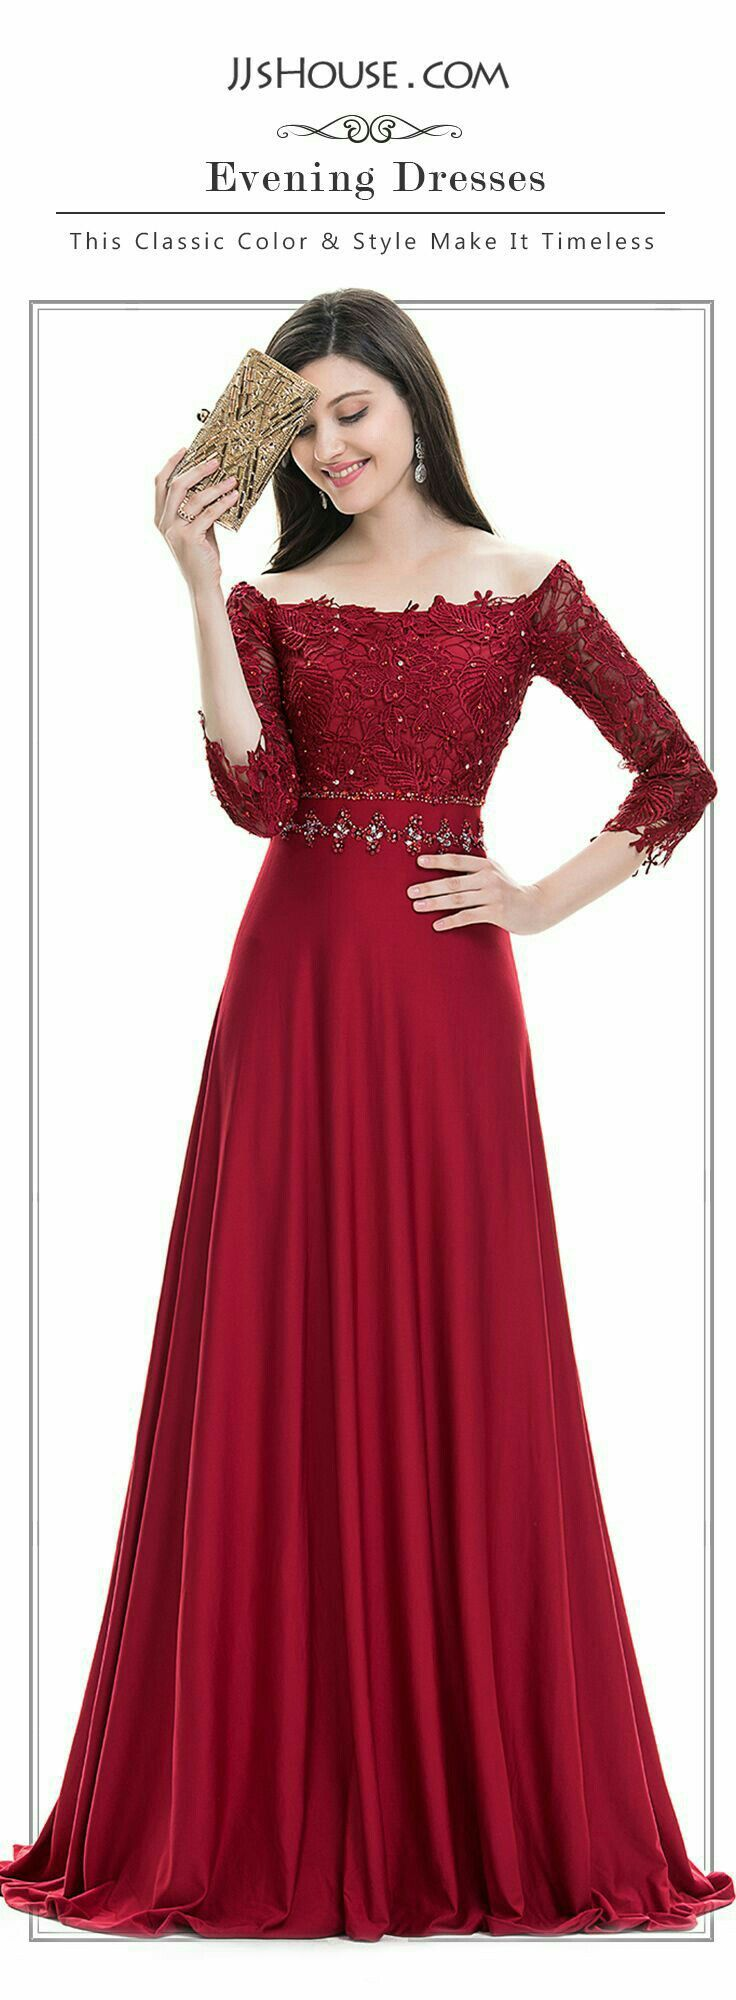 best pinch of europe images on pinterest evening gowns party